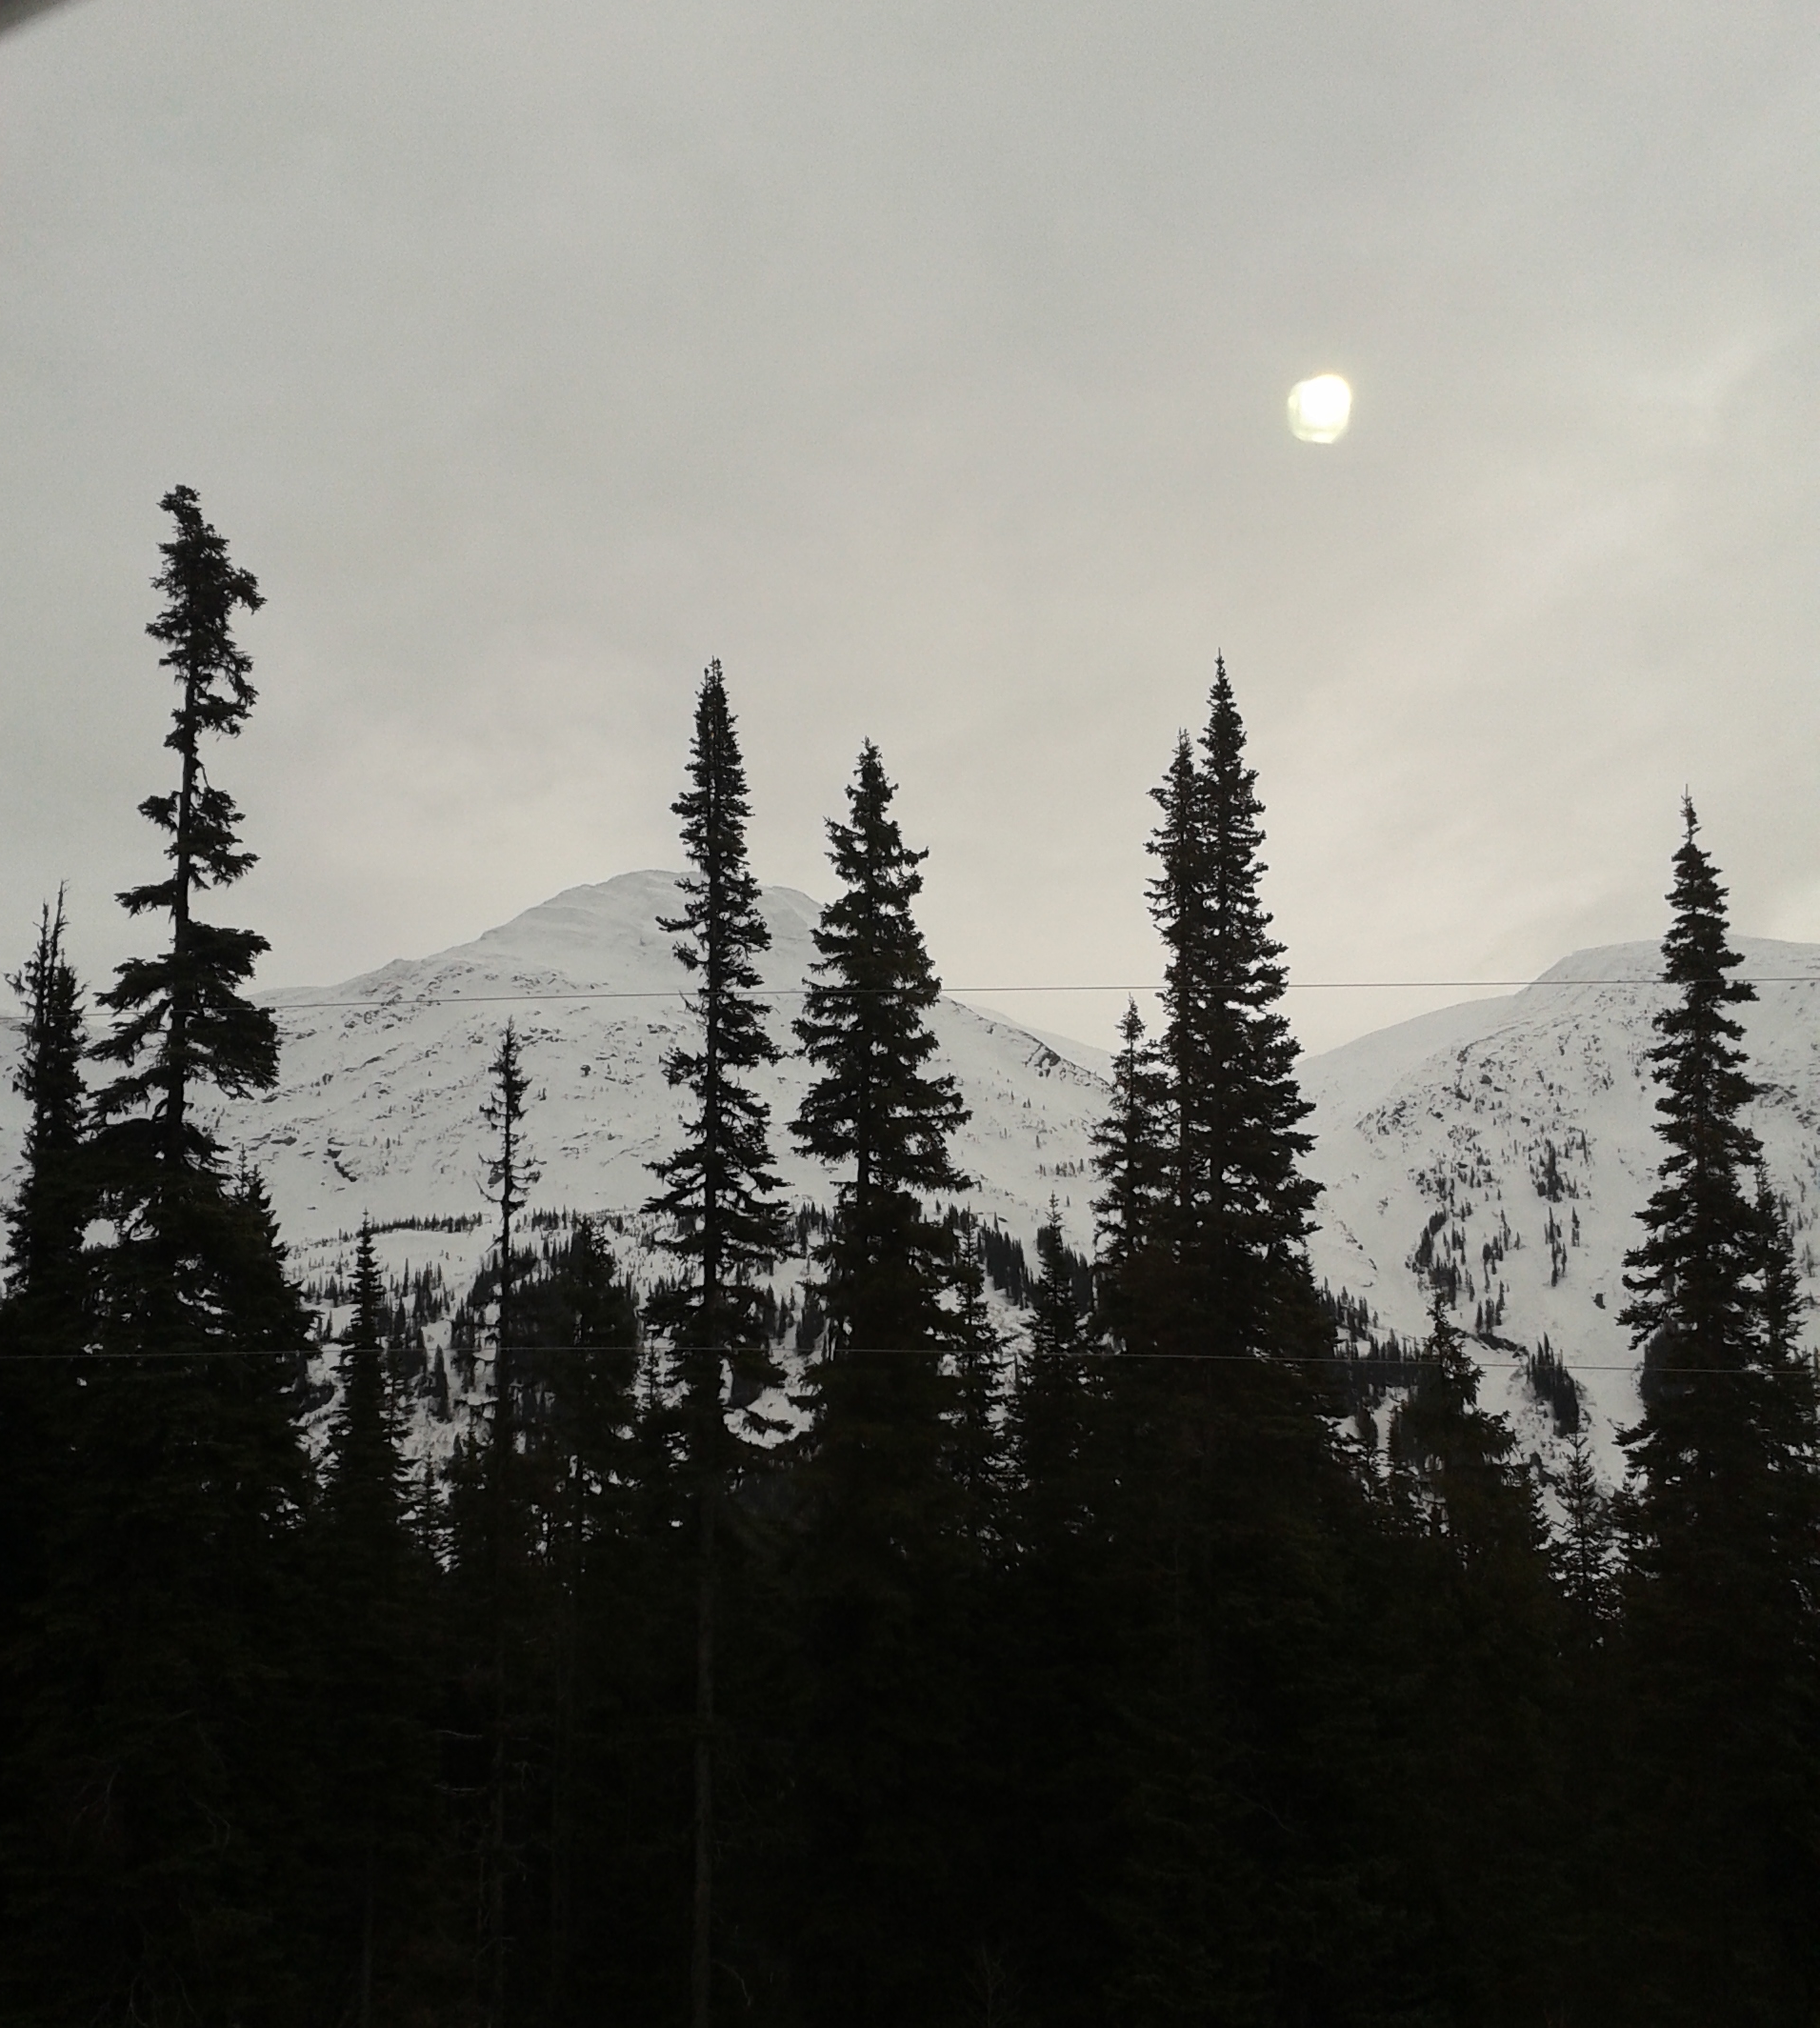 DAY 22 – NATURE BEAUTIFUL       Travelling up the northern highway in the early morning – Highway 97 Way Up North, North to Alaska (but not Alaska LOL - BC)